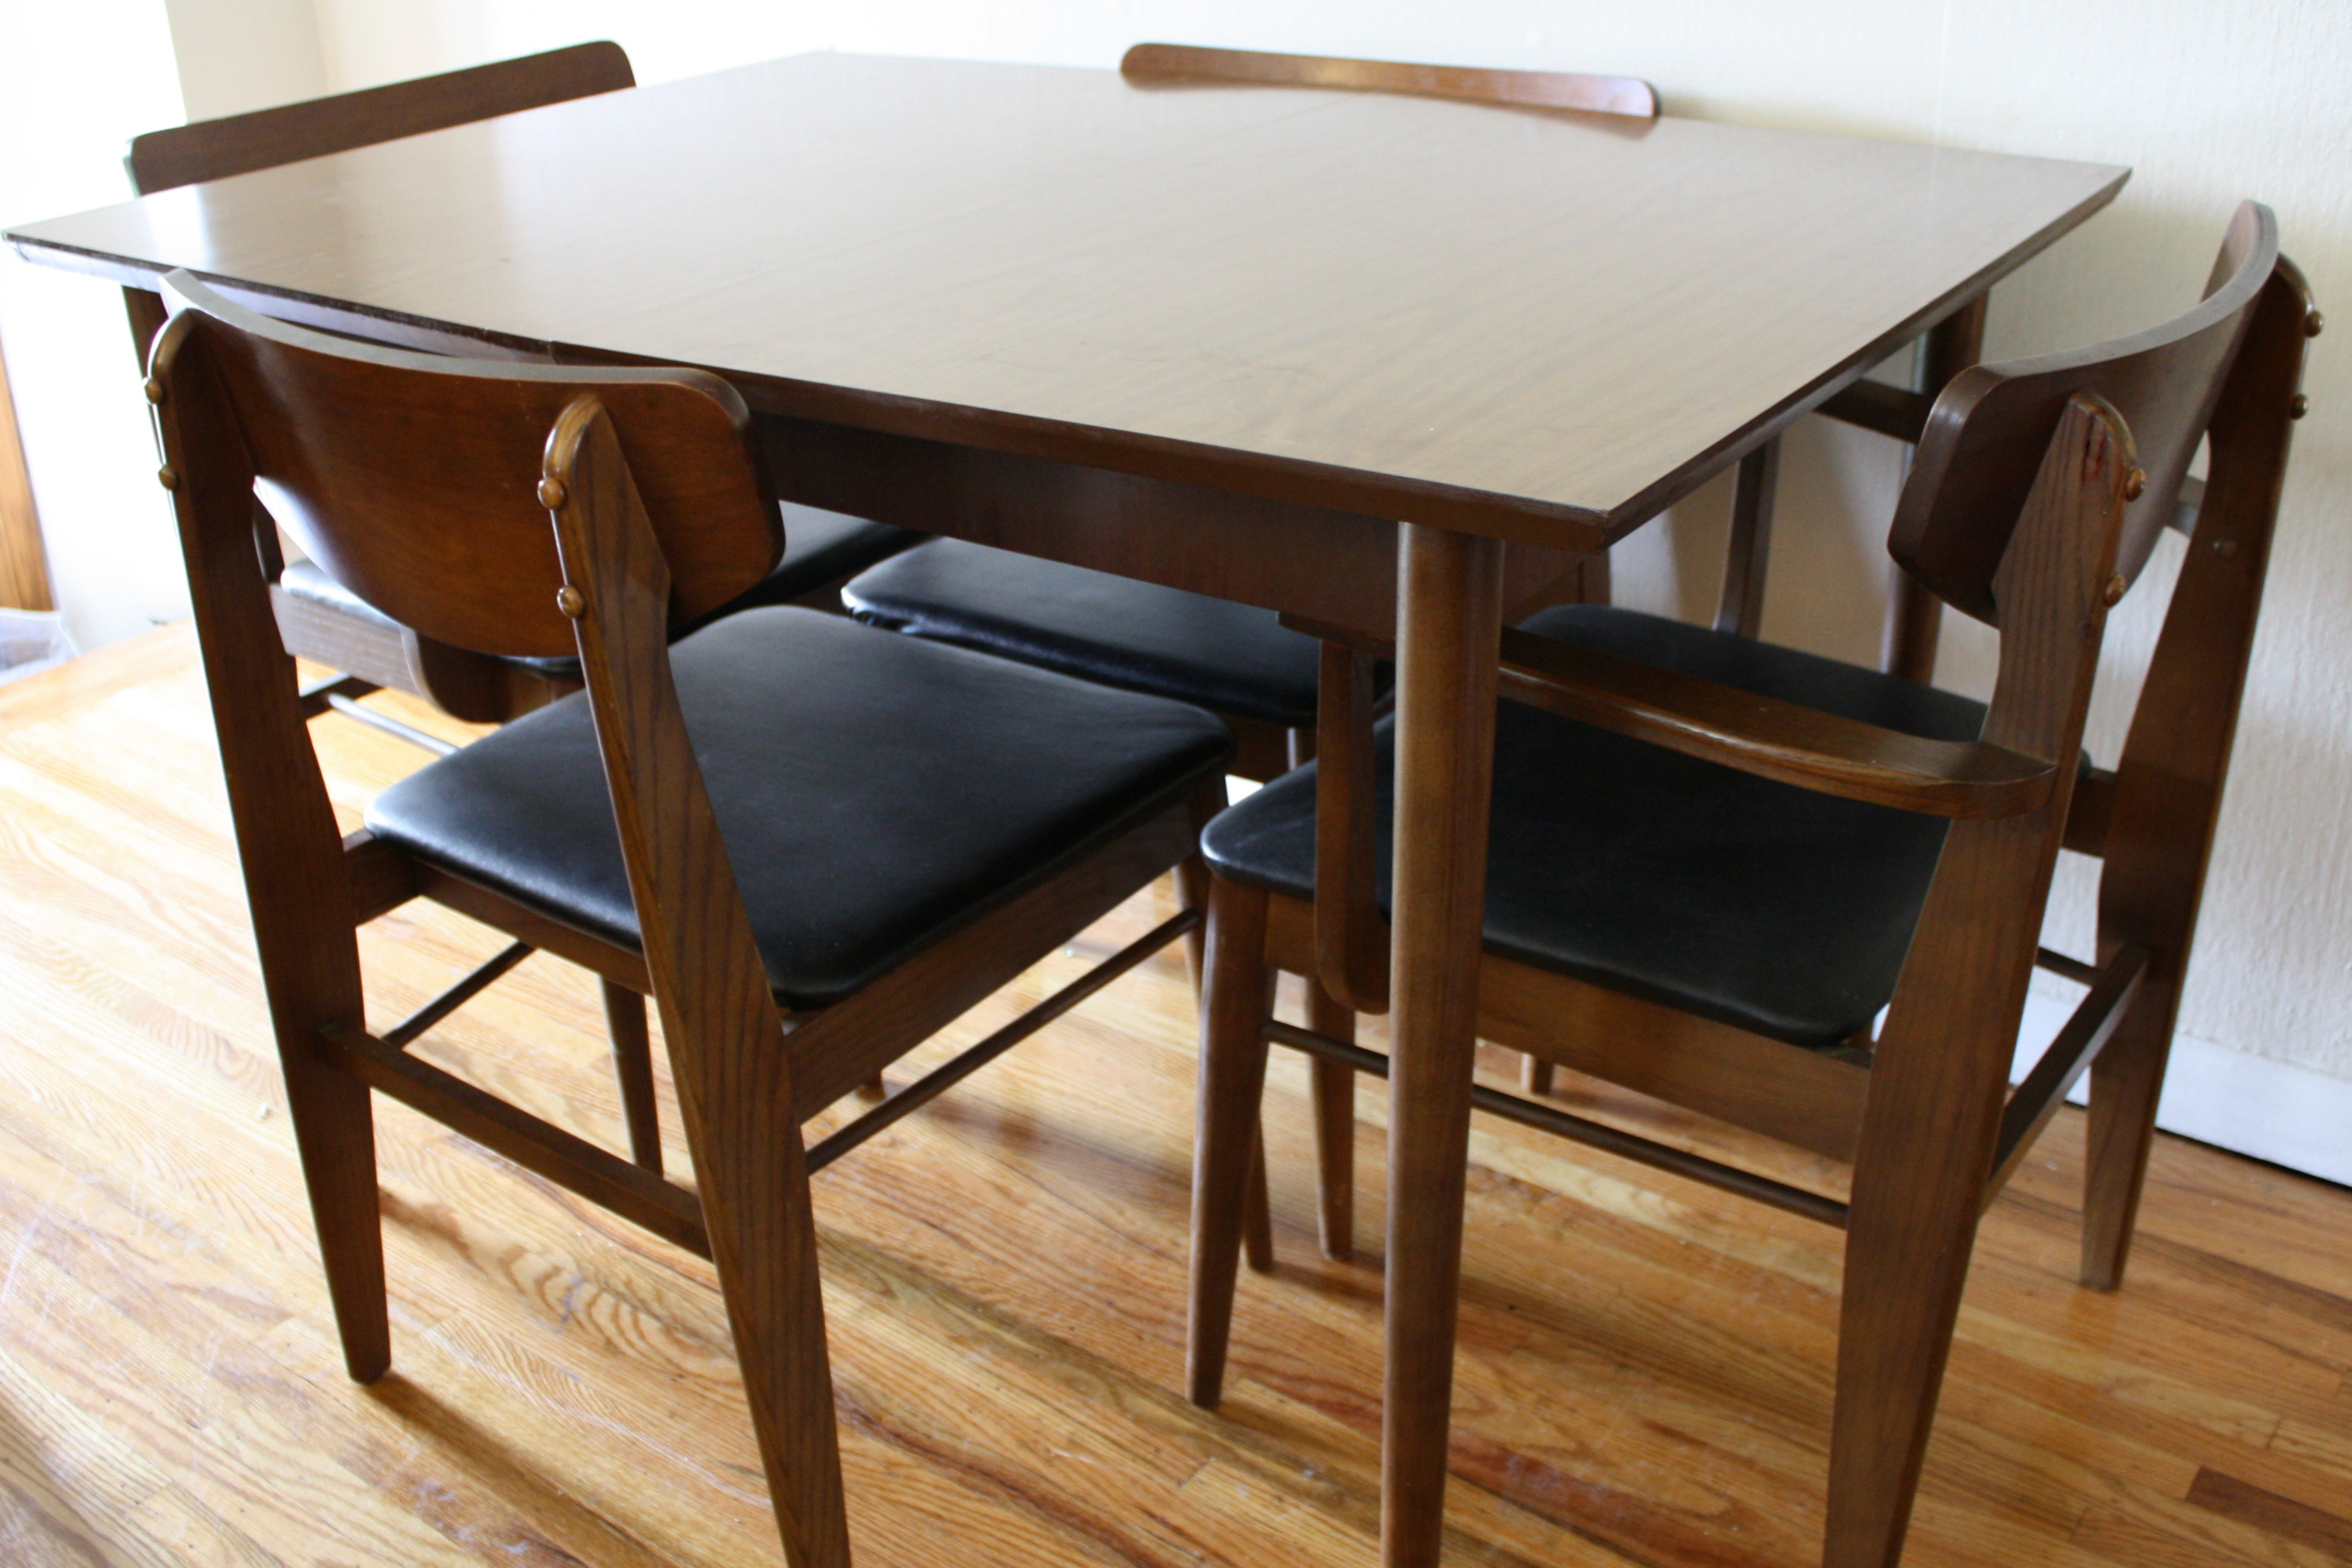 Dining Table With 2 Chairs Furniture 100181 100182 100183 Monaco Double Pedestal Dining Table